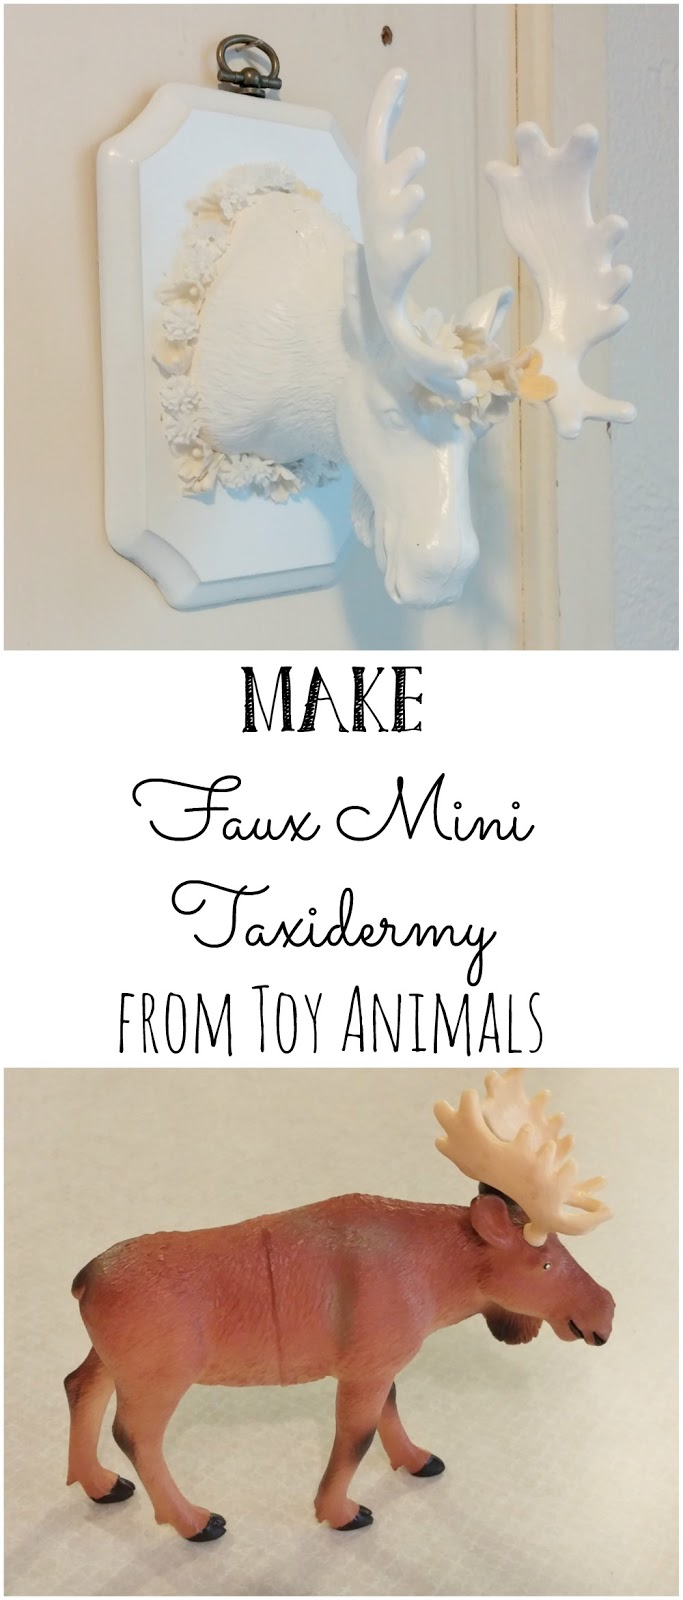 Make Faux Mini Taxidermy from Toy Animals